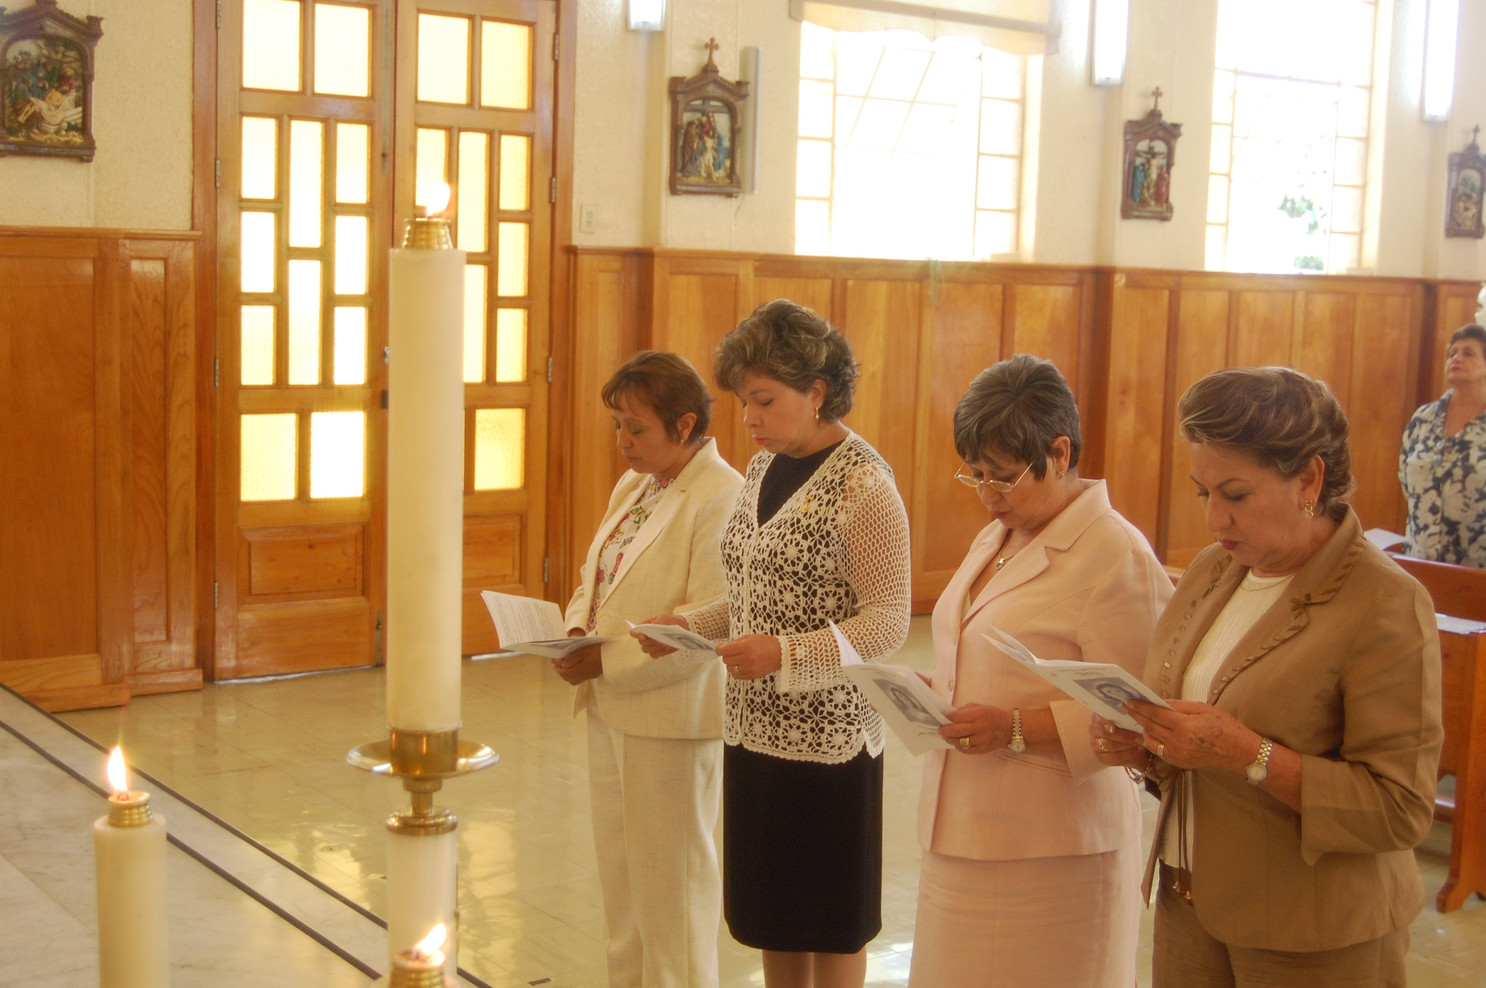 A community of Associates in Mexico renewing their commitment (2007).